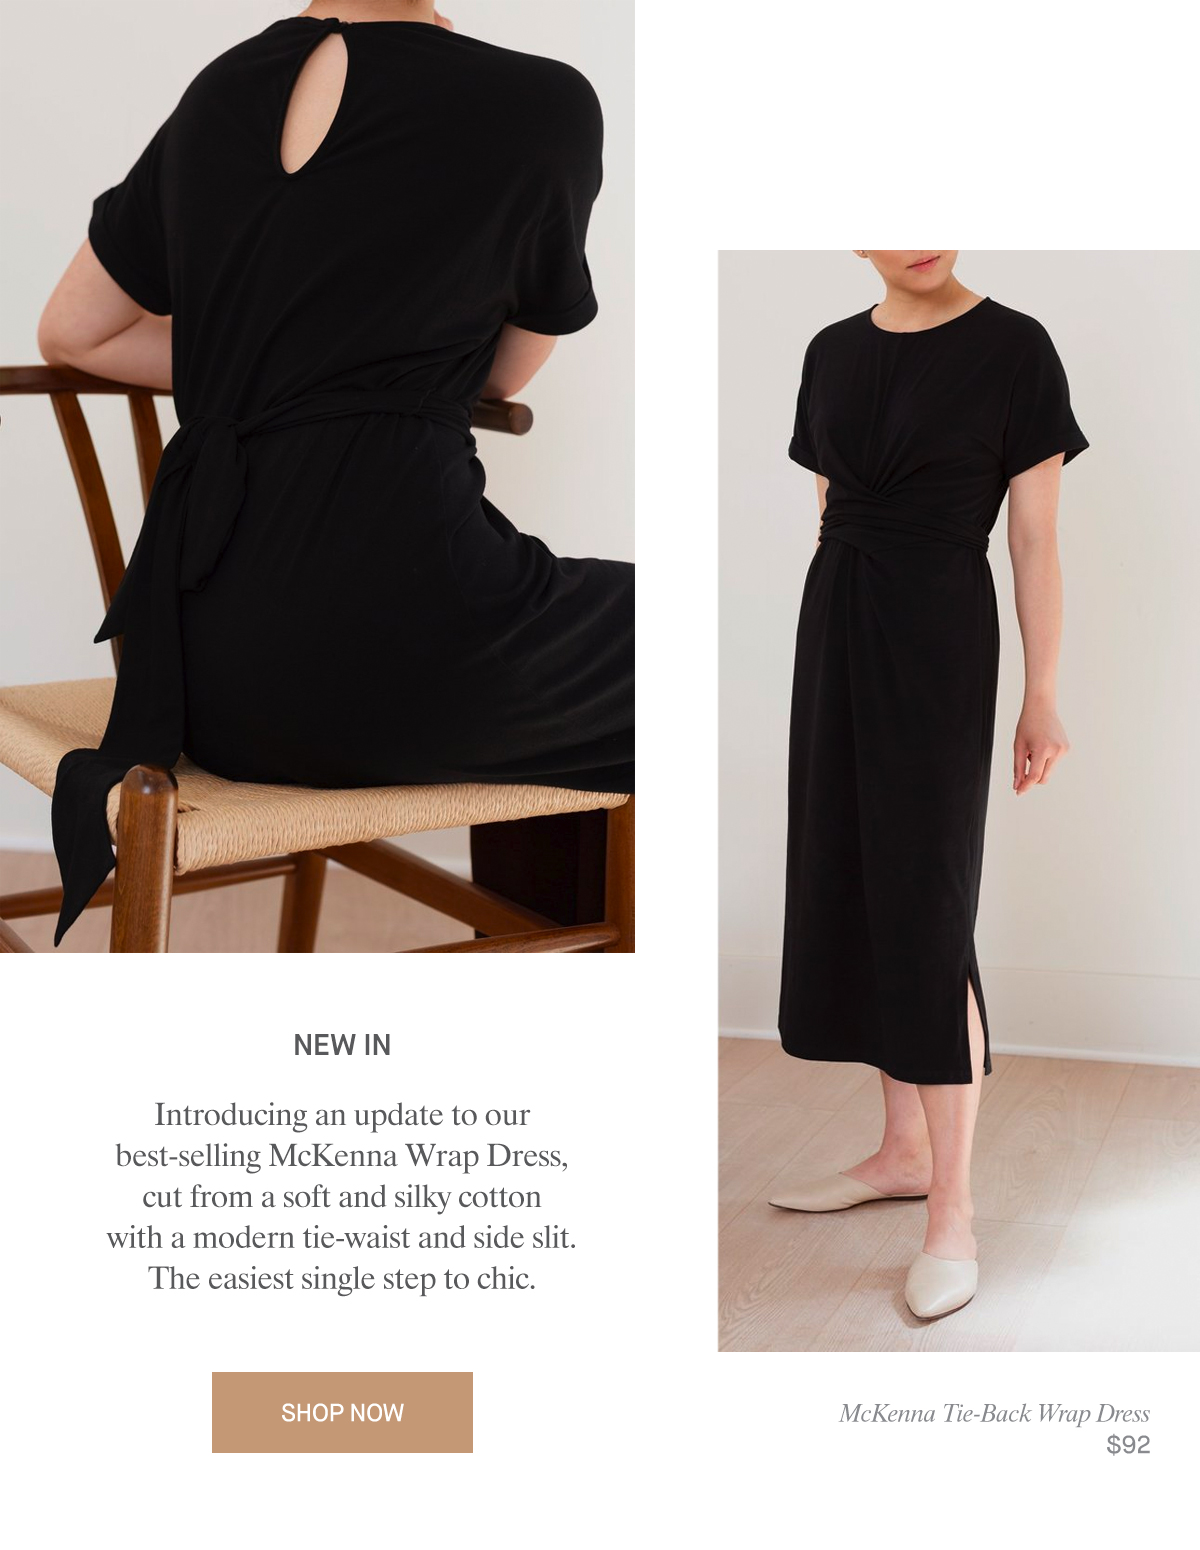 NEW IN  |  Introducing an update to our best-selling McKenna Wrap Dress, cut from a soft and silky cotton with a modern tie-waist and side slit. The easiest single step to chic.